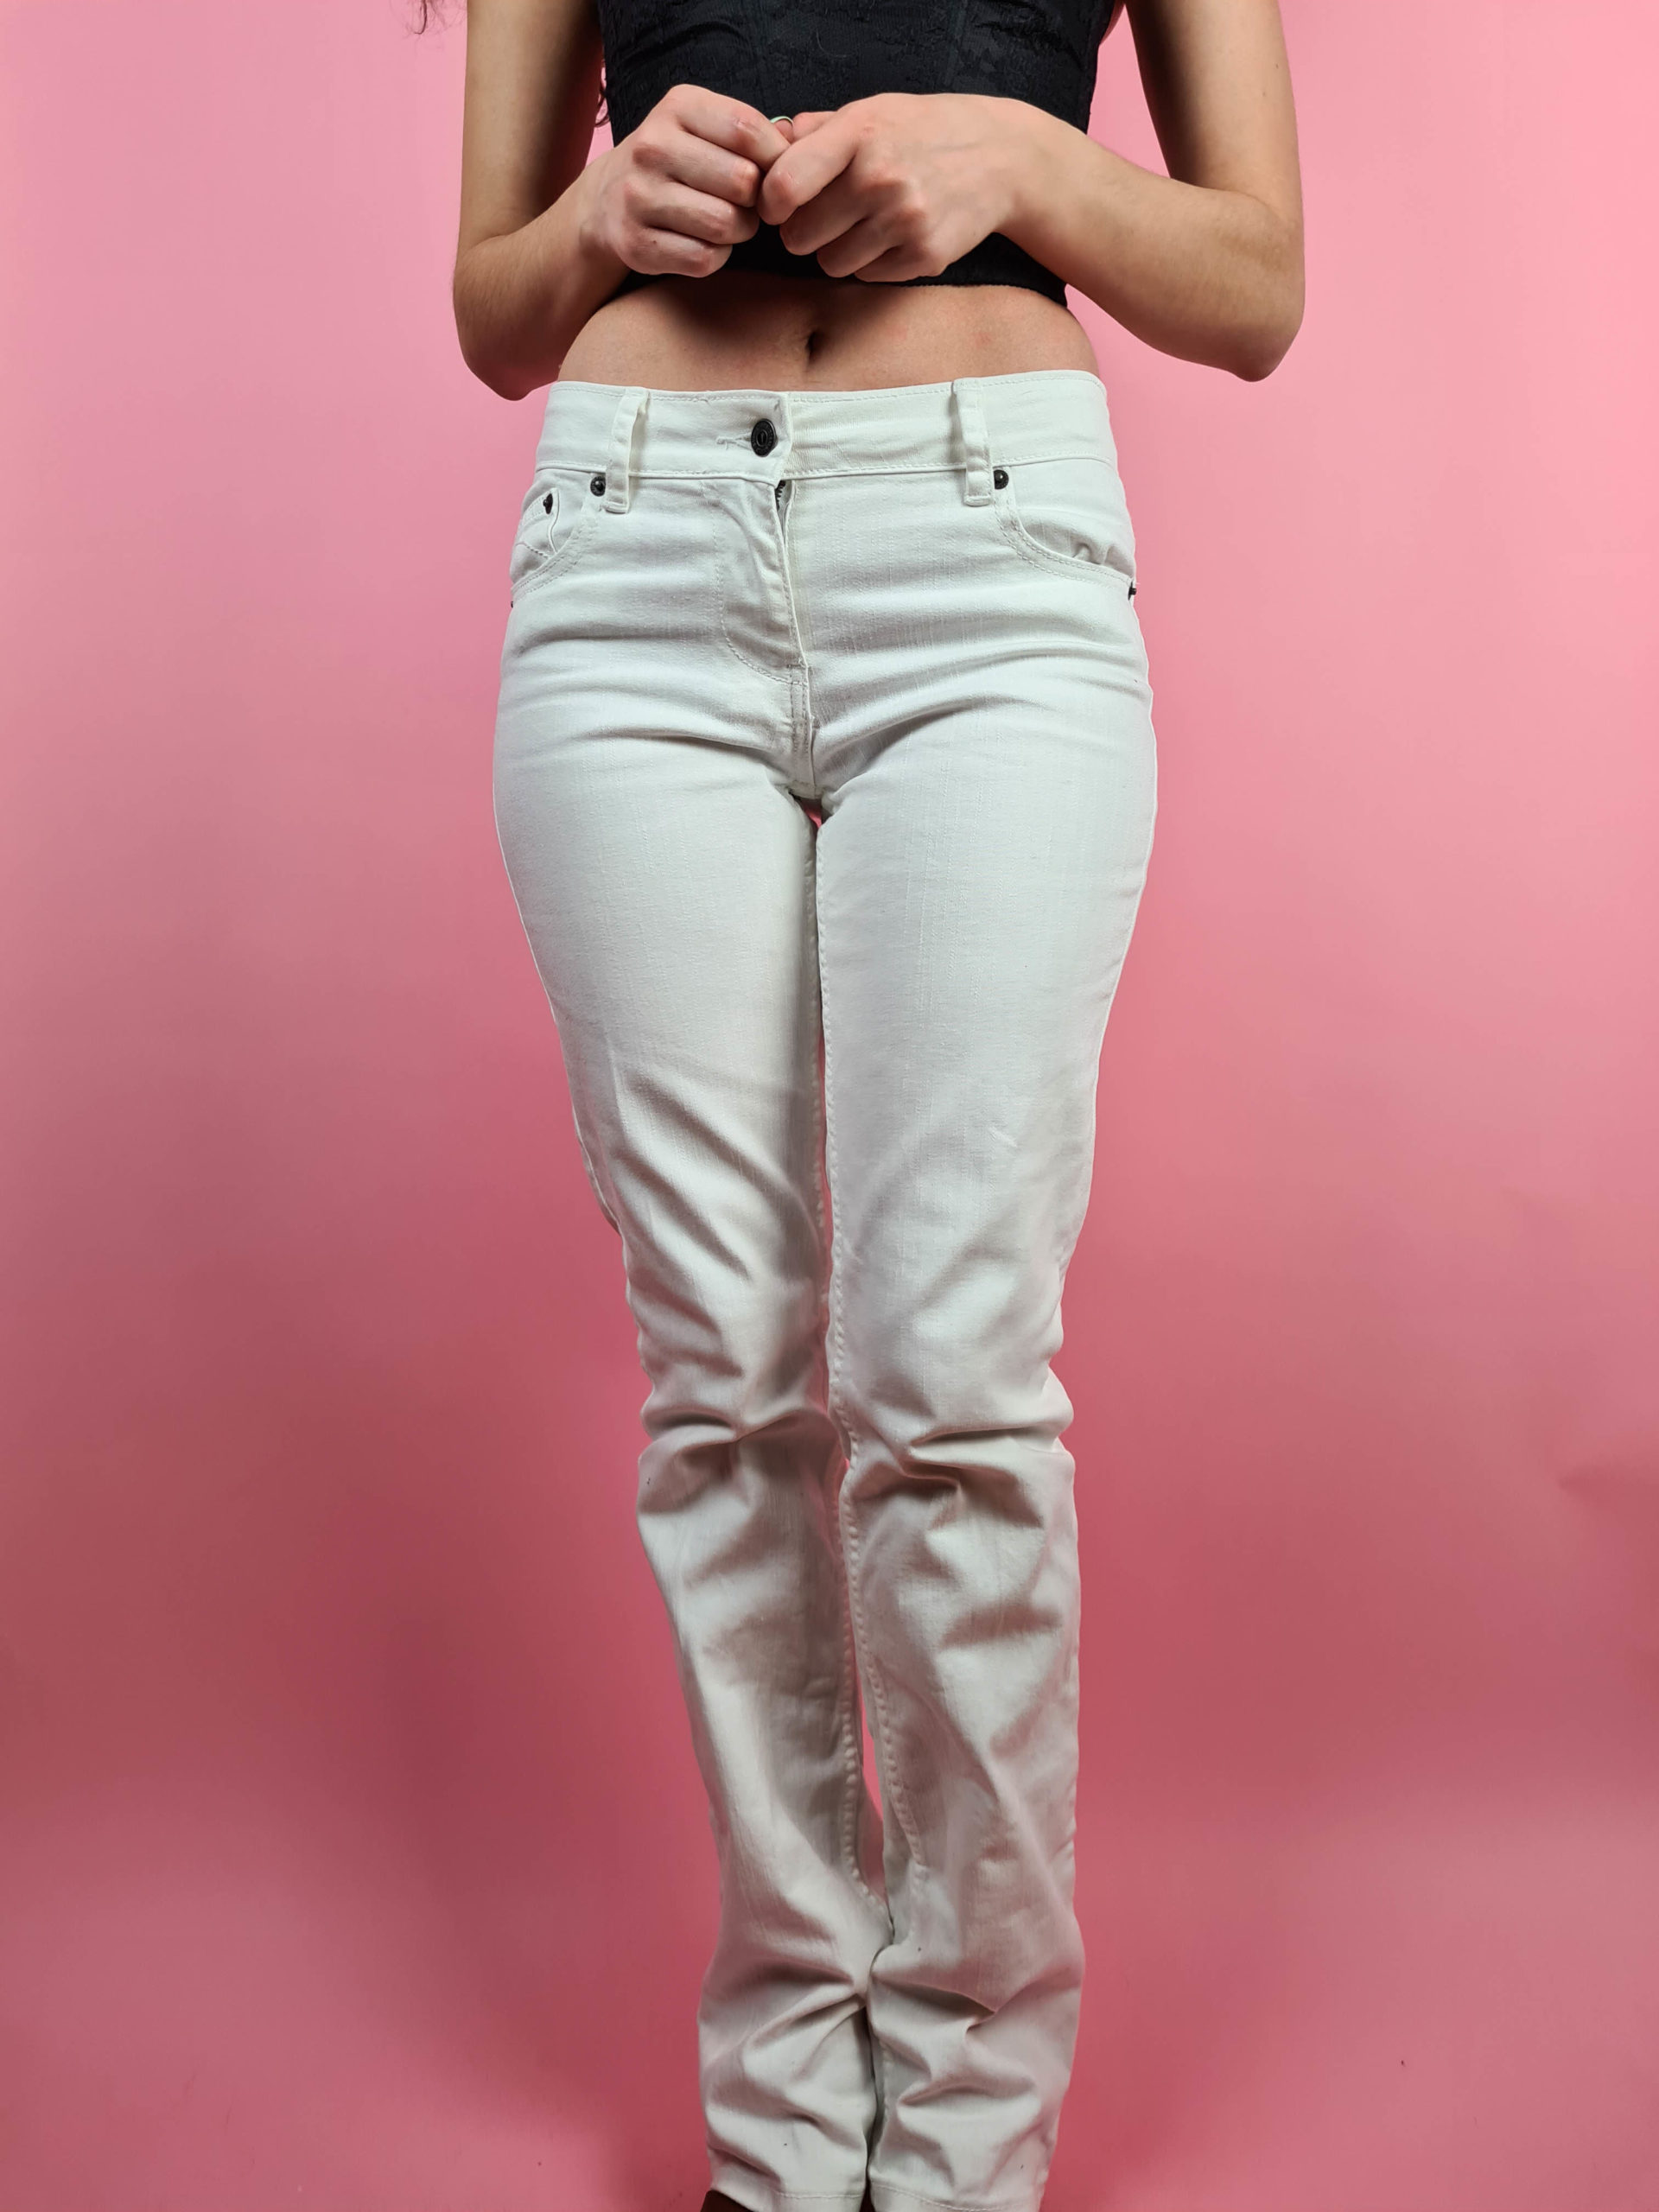 jean blanc taille basse (7)